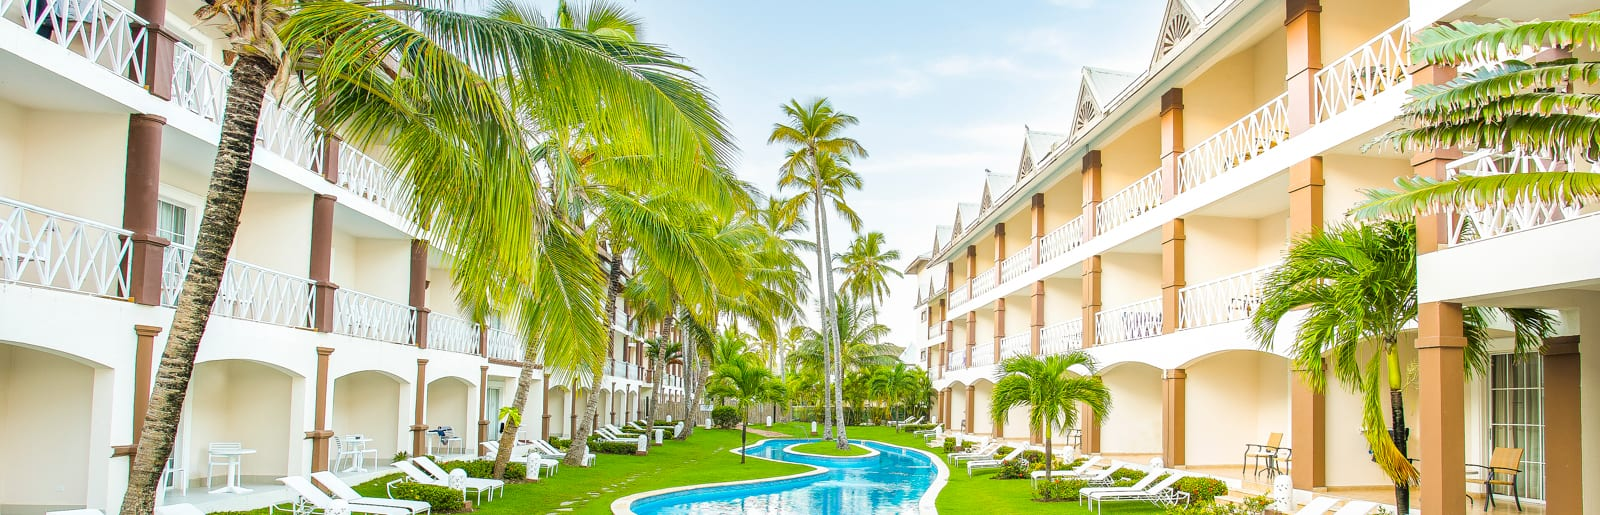 All-Inclusive-Hotel in Punta Cana.